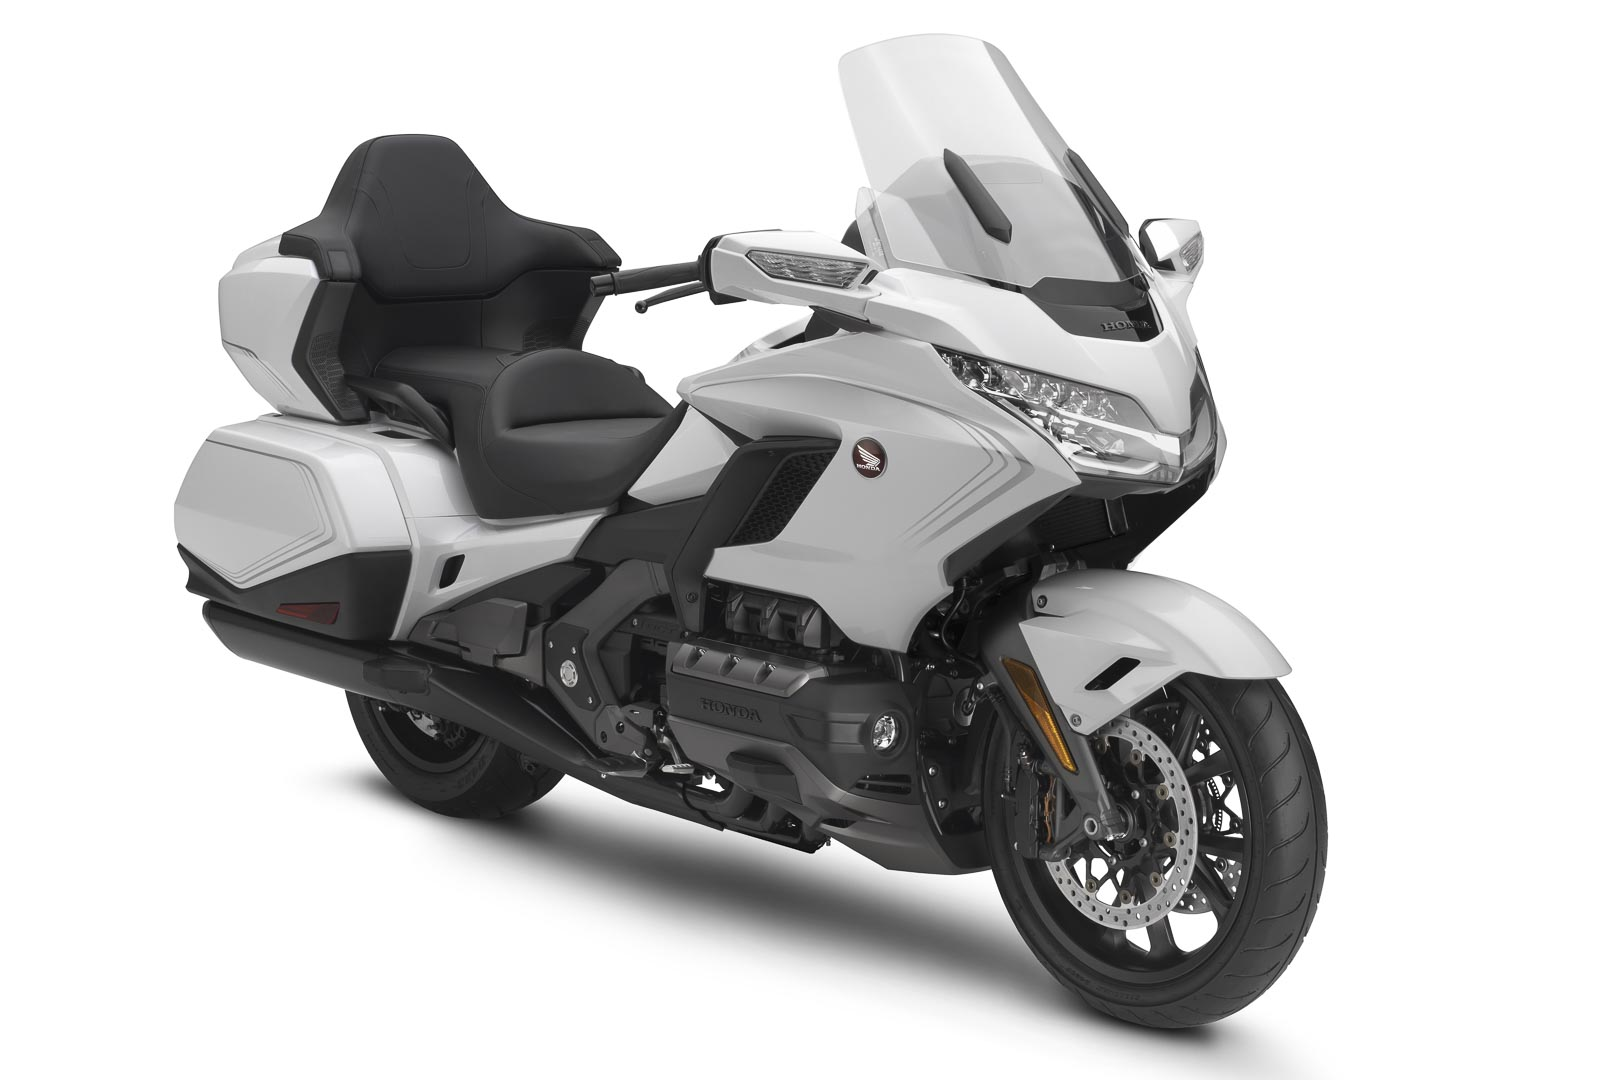 2020 HONDA GOLD WING LINEUP FIRST LOOK (7 FAST FACTS ...